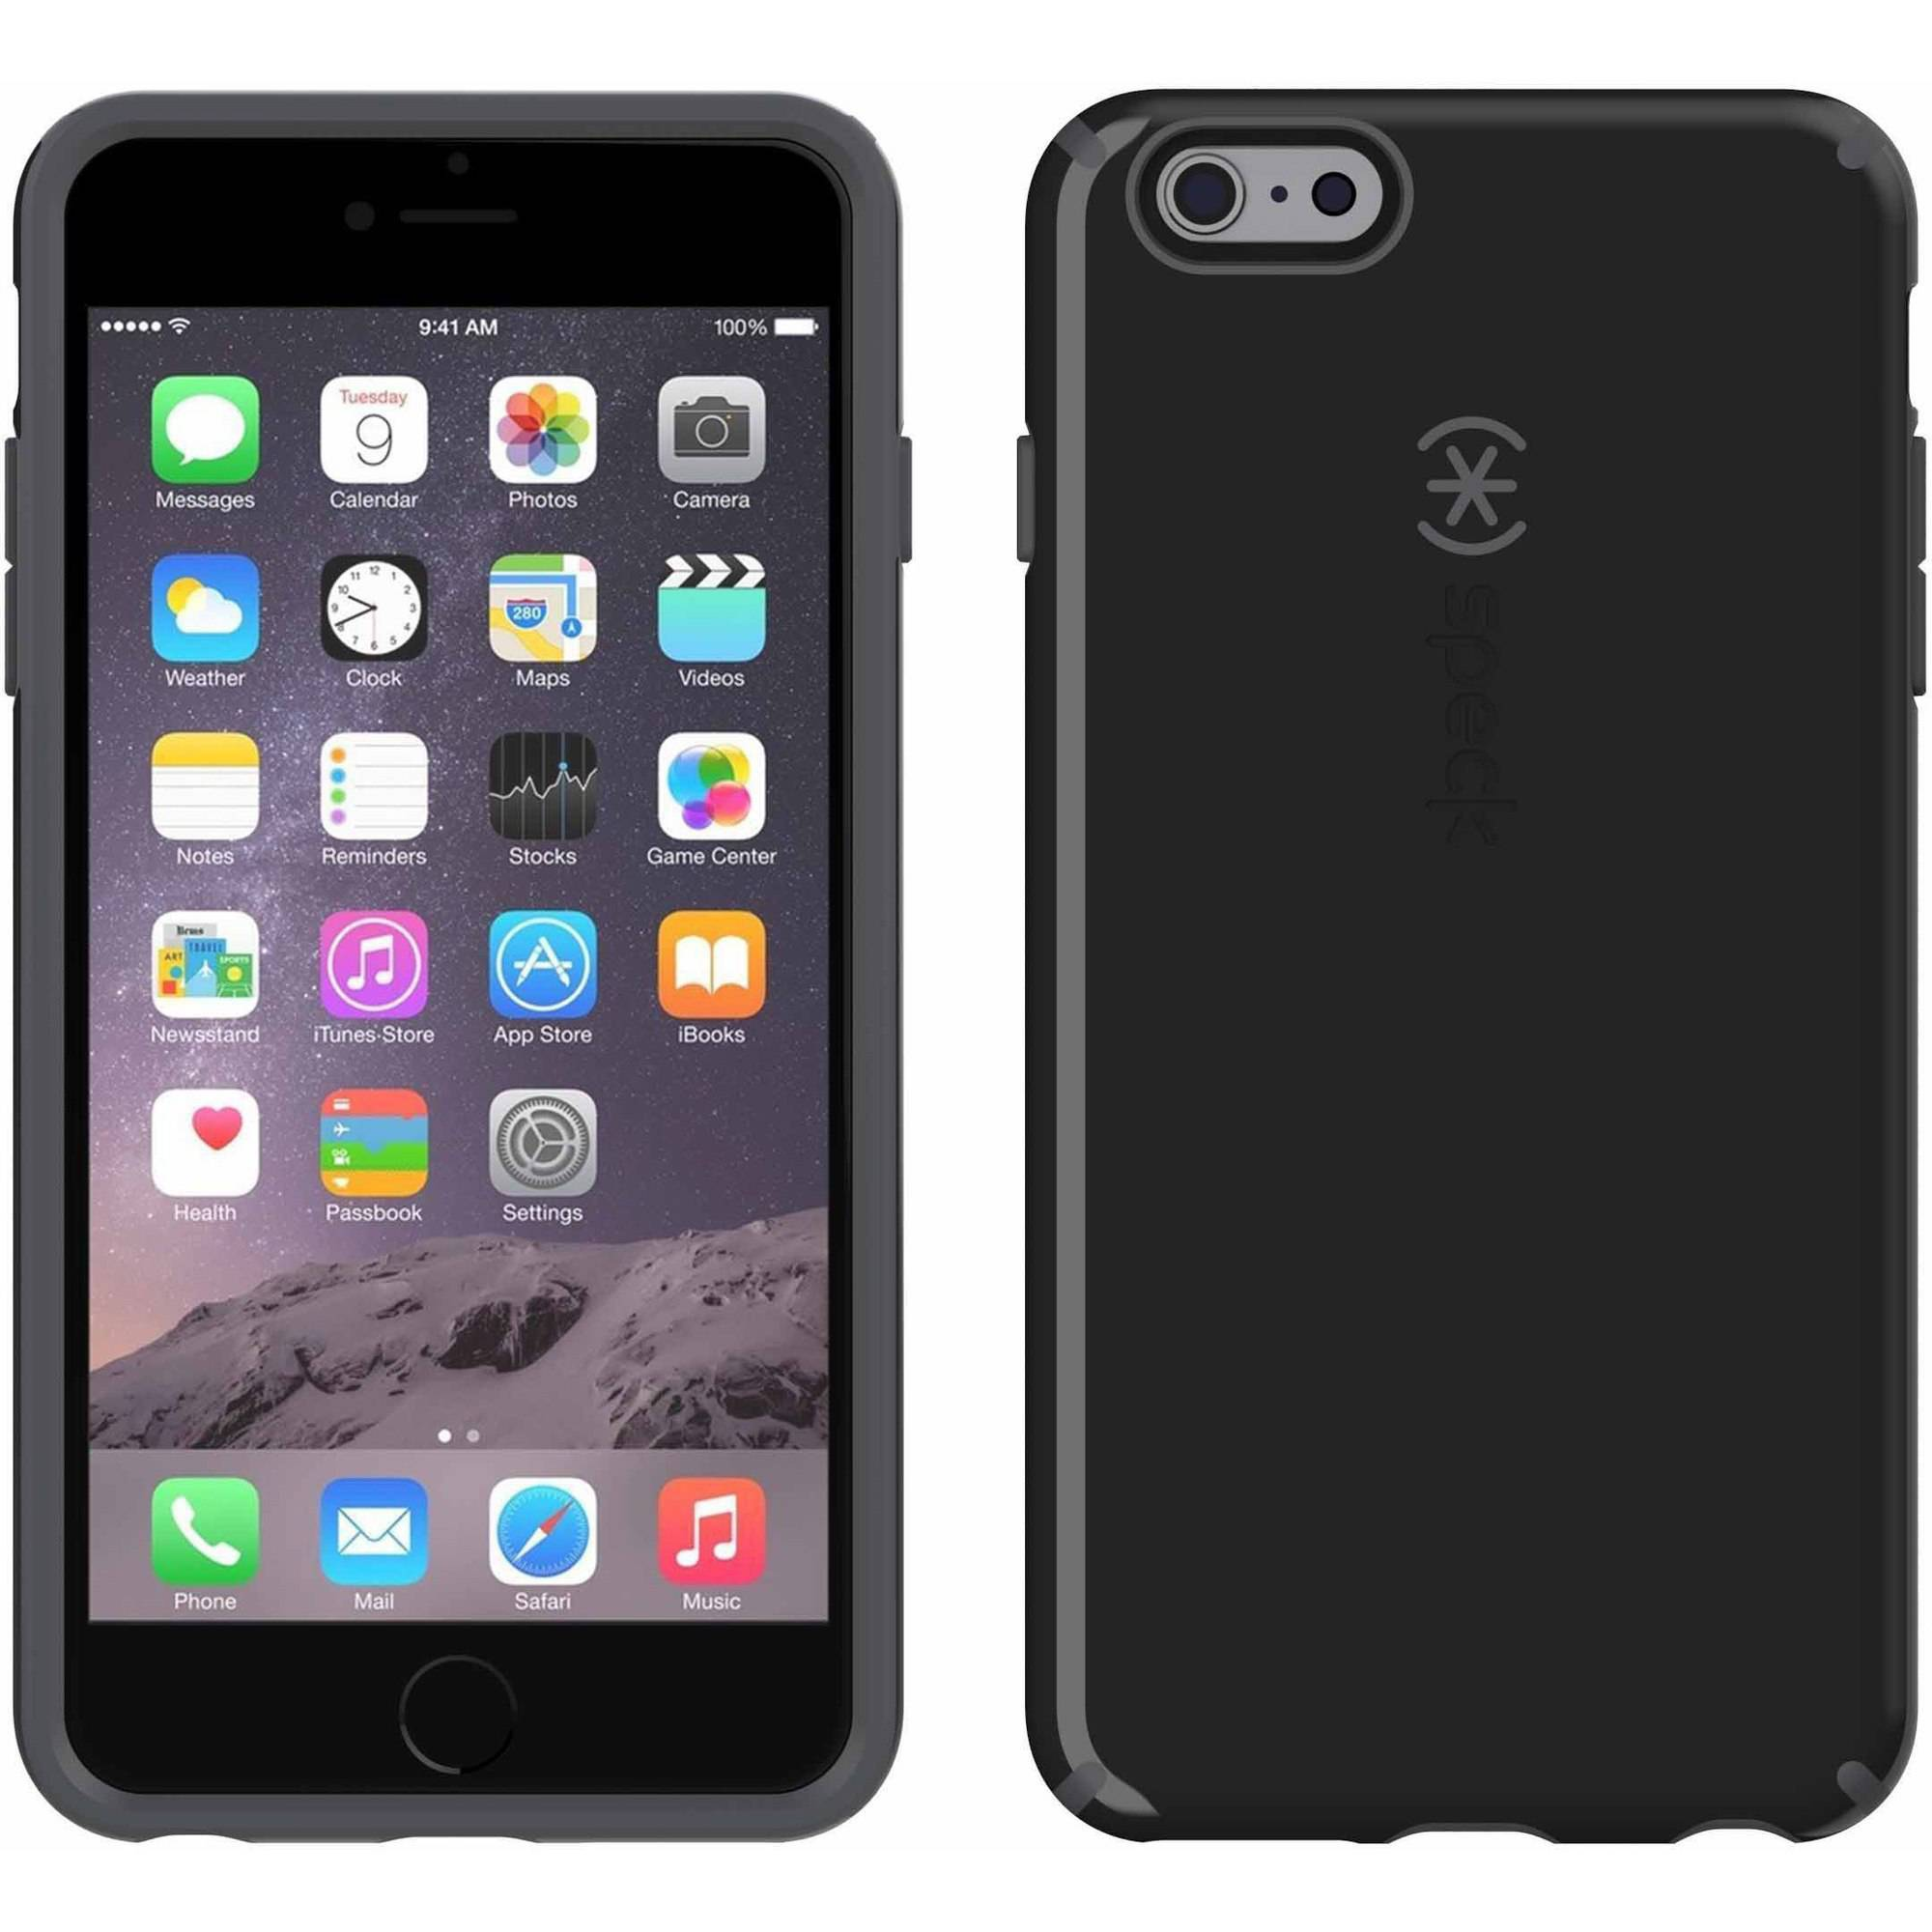 iPhone 6/6s plus Speck candyshell case, black,slate grey